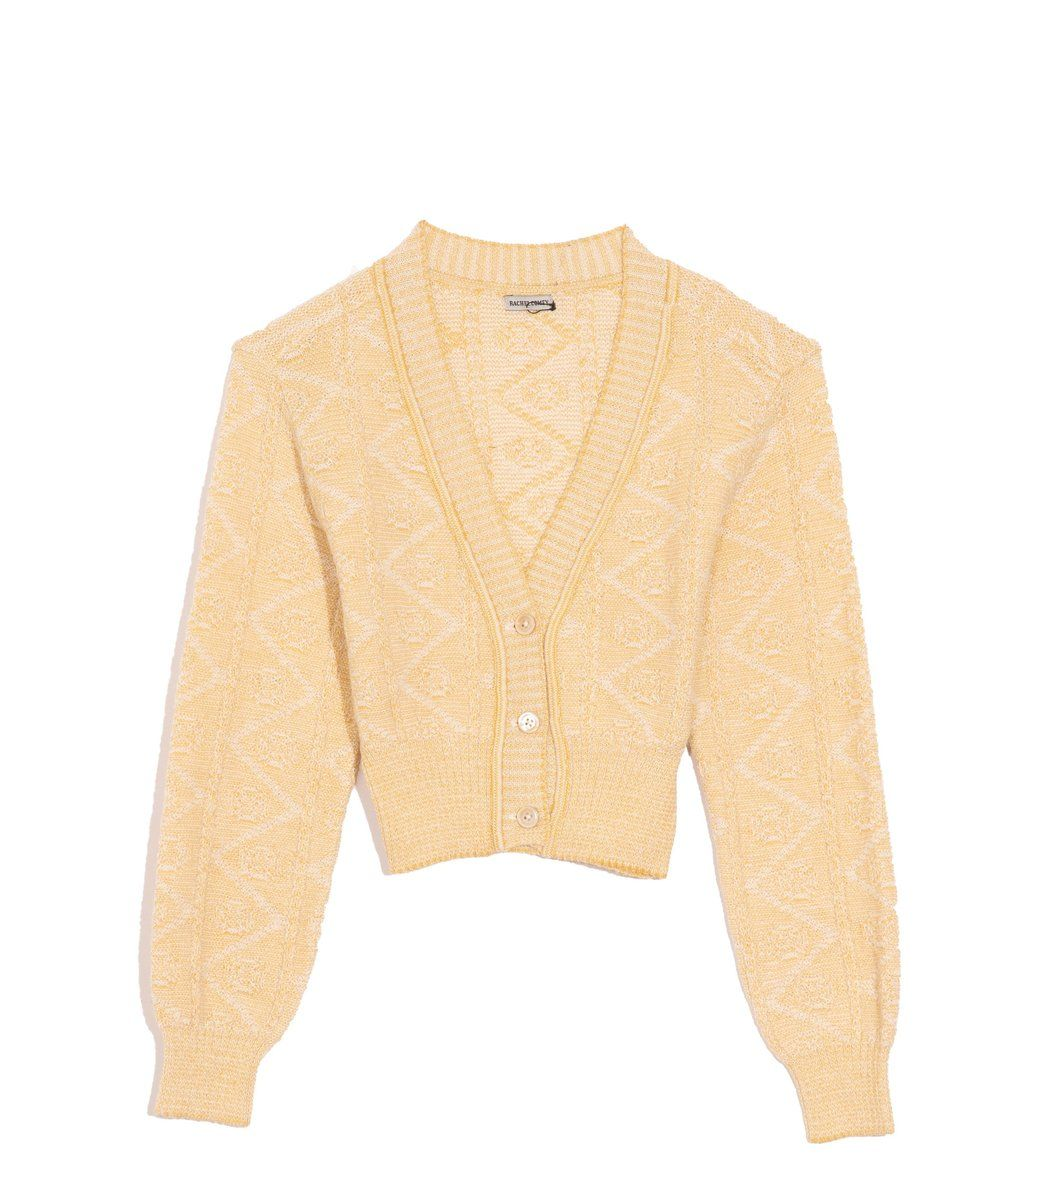 12 Best Cardigans for Women 2020 Top Cardigan Sweaters to